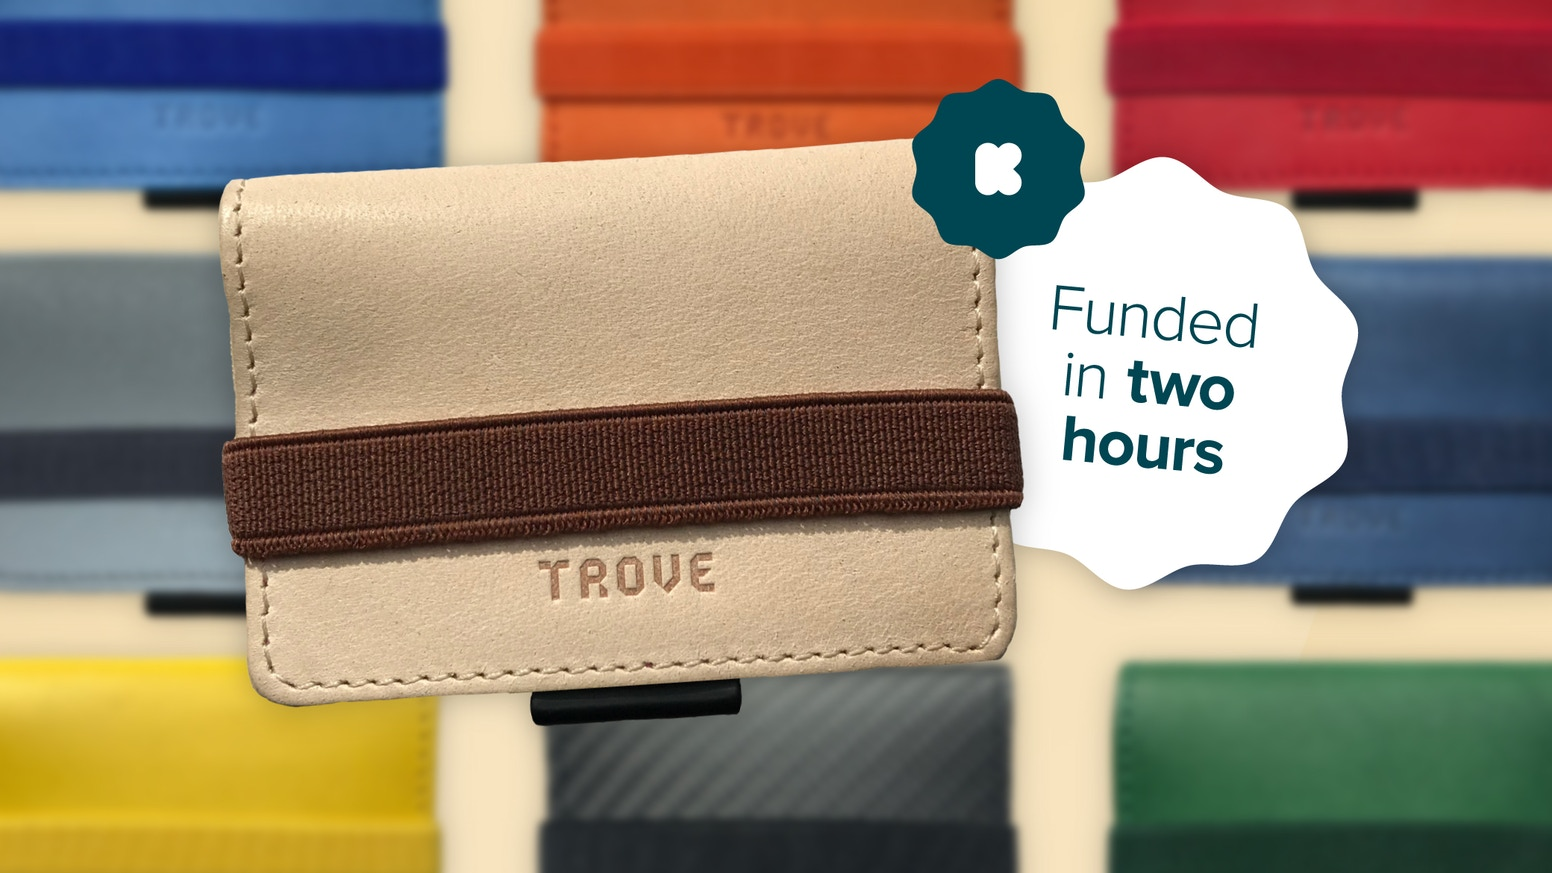 Funded in just 2 hours, the Ultimate Slim Wallet and card case is back with another innovative upgrade. Introducing the TROVE Cash Wrap. Reverse the Rules.